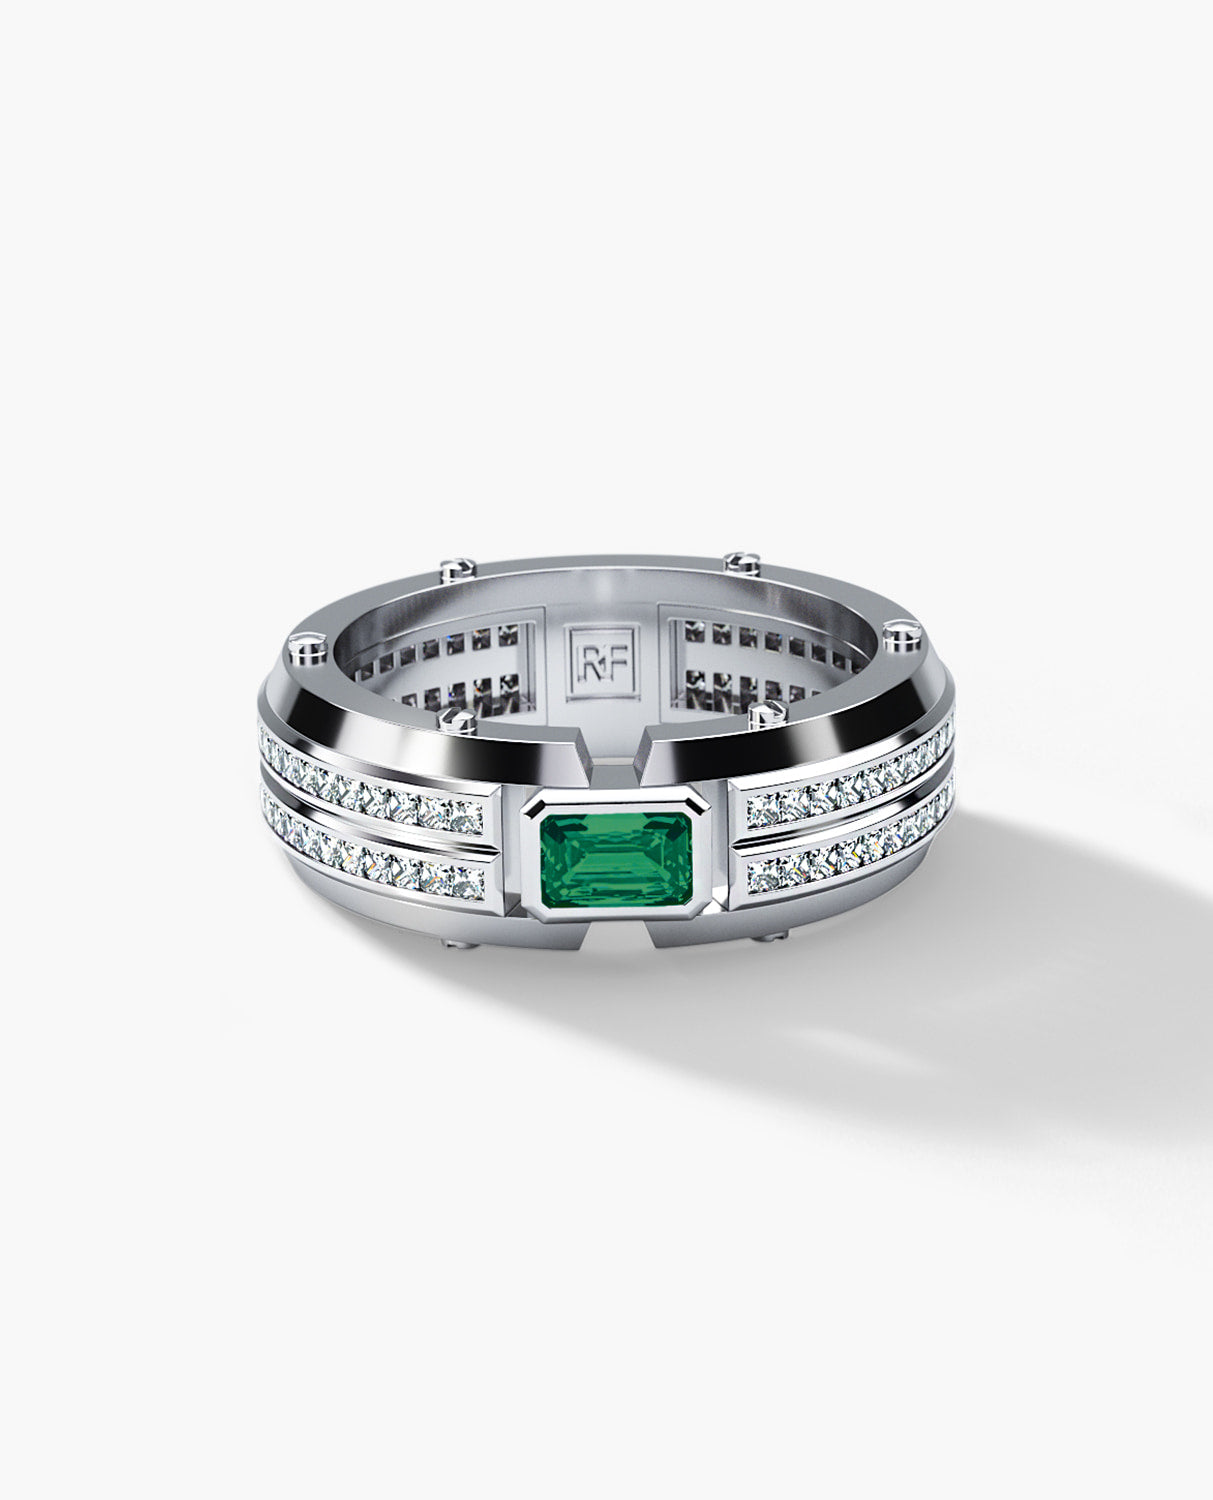 CLEBURNE Mens Gold Wedding Band with Emerald